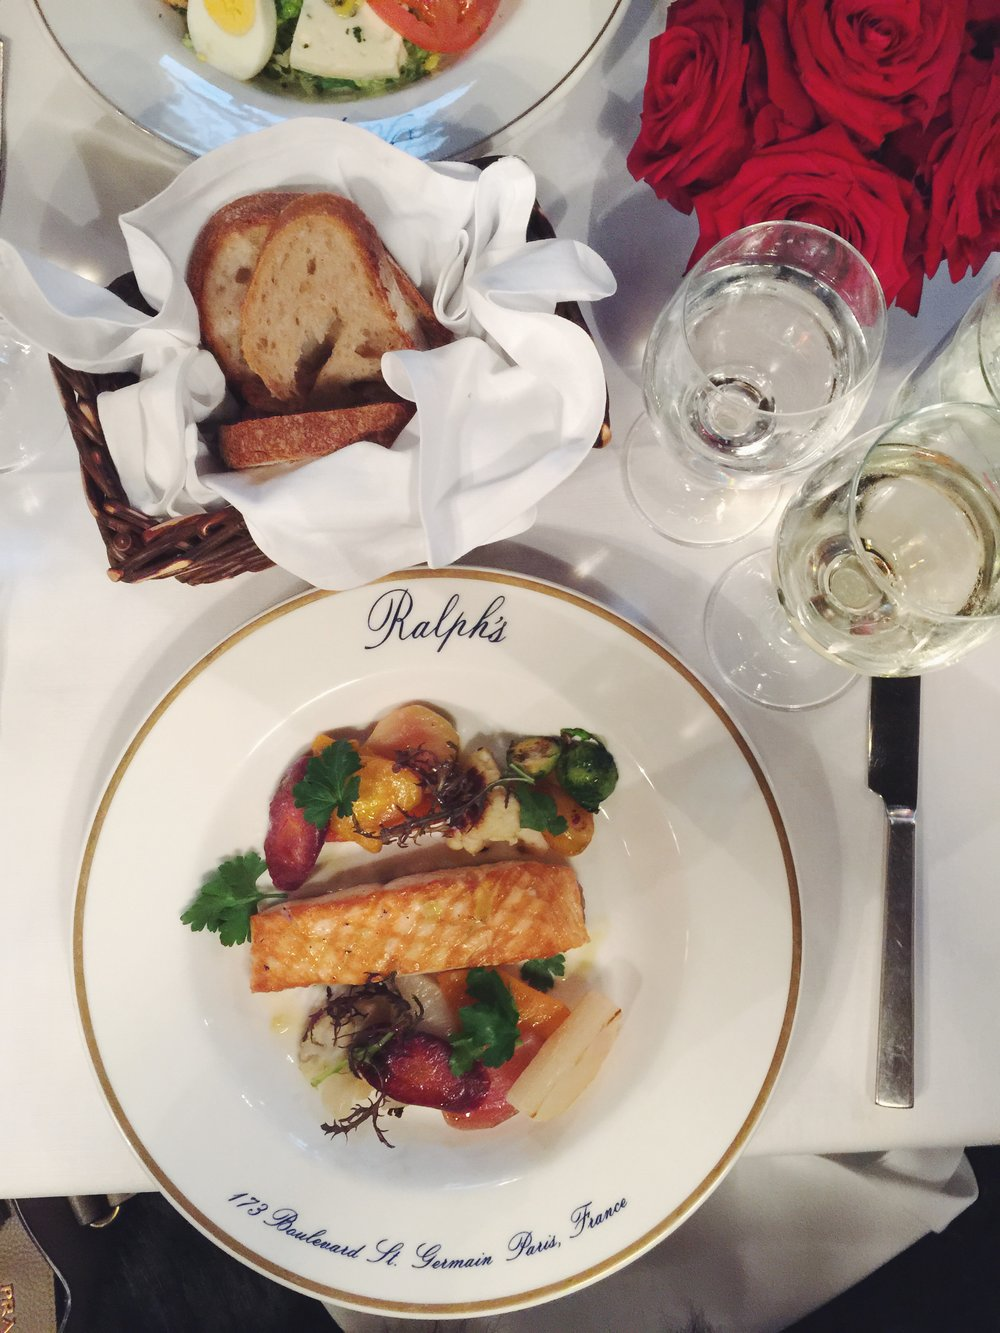 Pan Roasted Salmon at Ralph's in Paris. Ralph Lauren Restaurant Paris